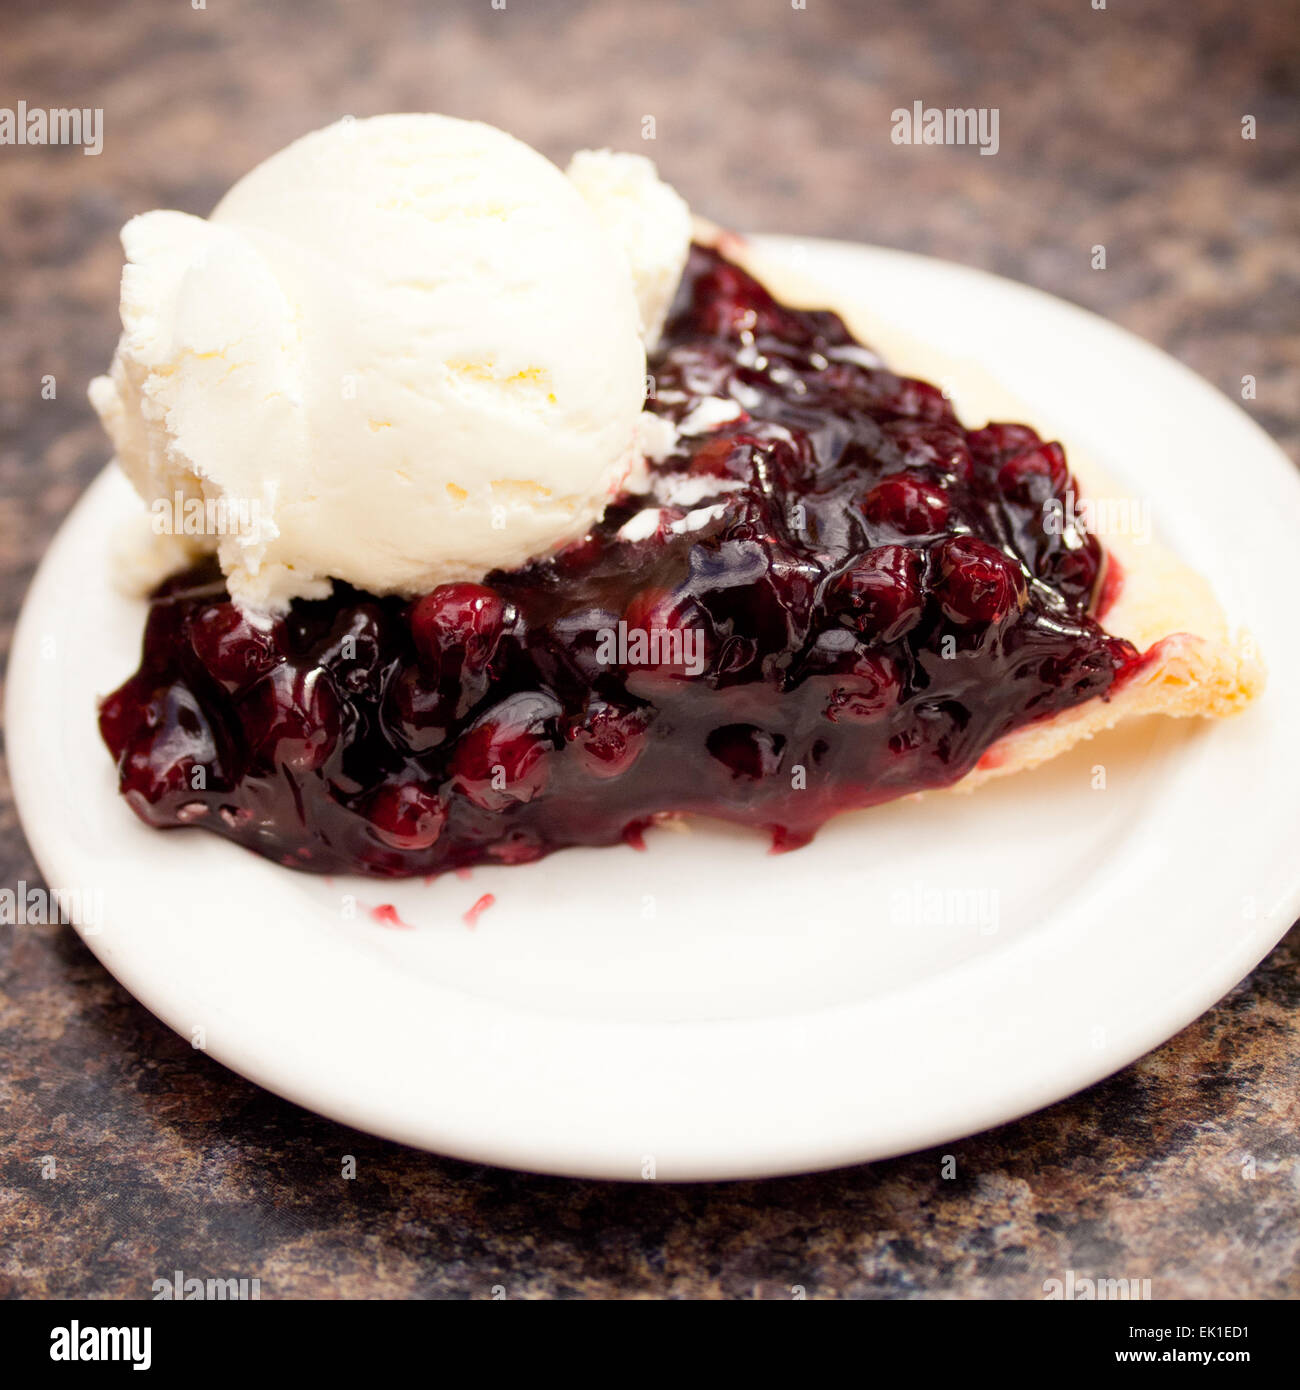 A slice of Saskatoon berry pie and a scoop of vanilla ice cream from